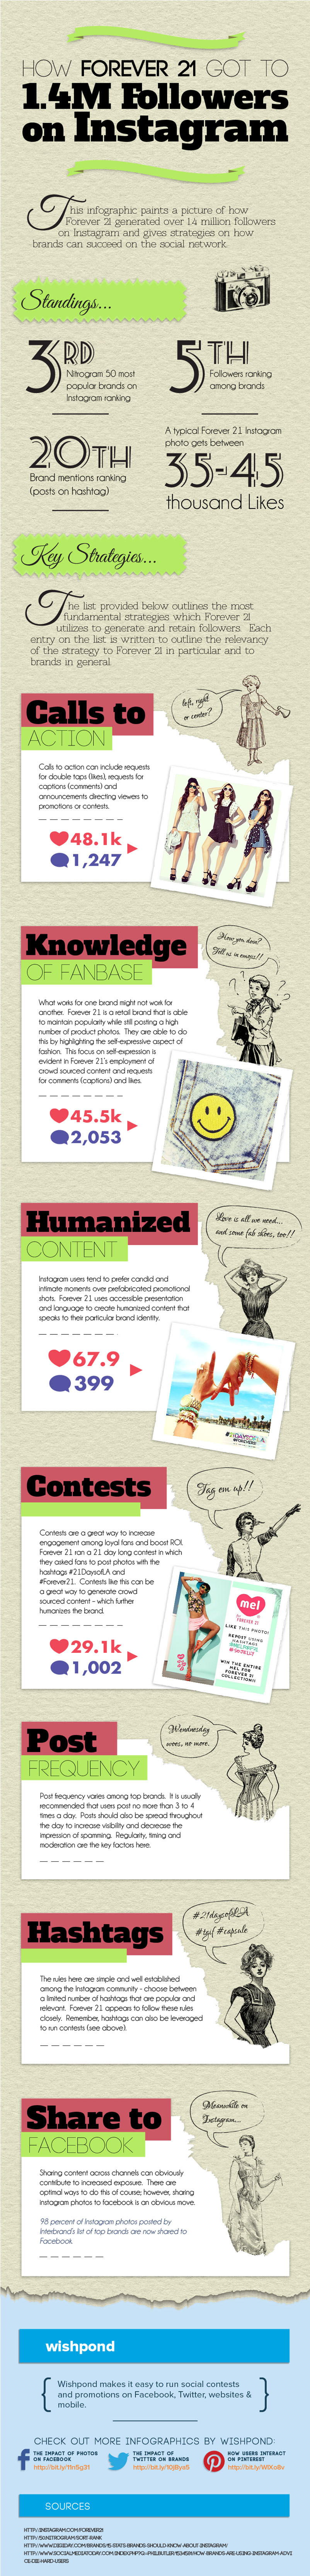 7 powerful strategies on how brands can succeed on instagram - infographic